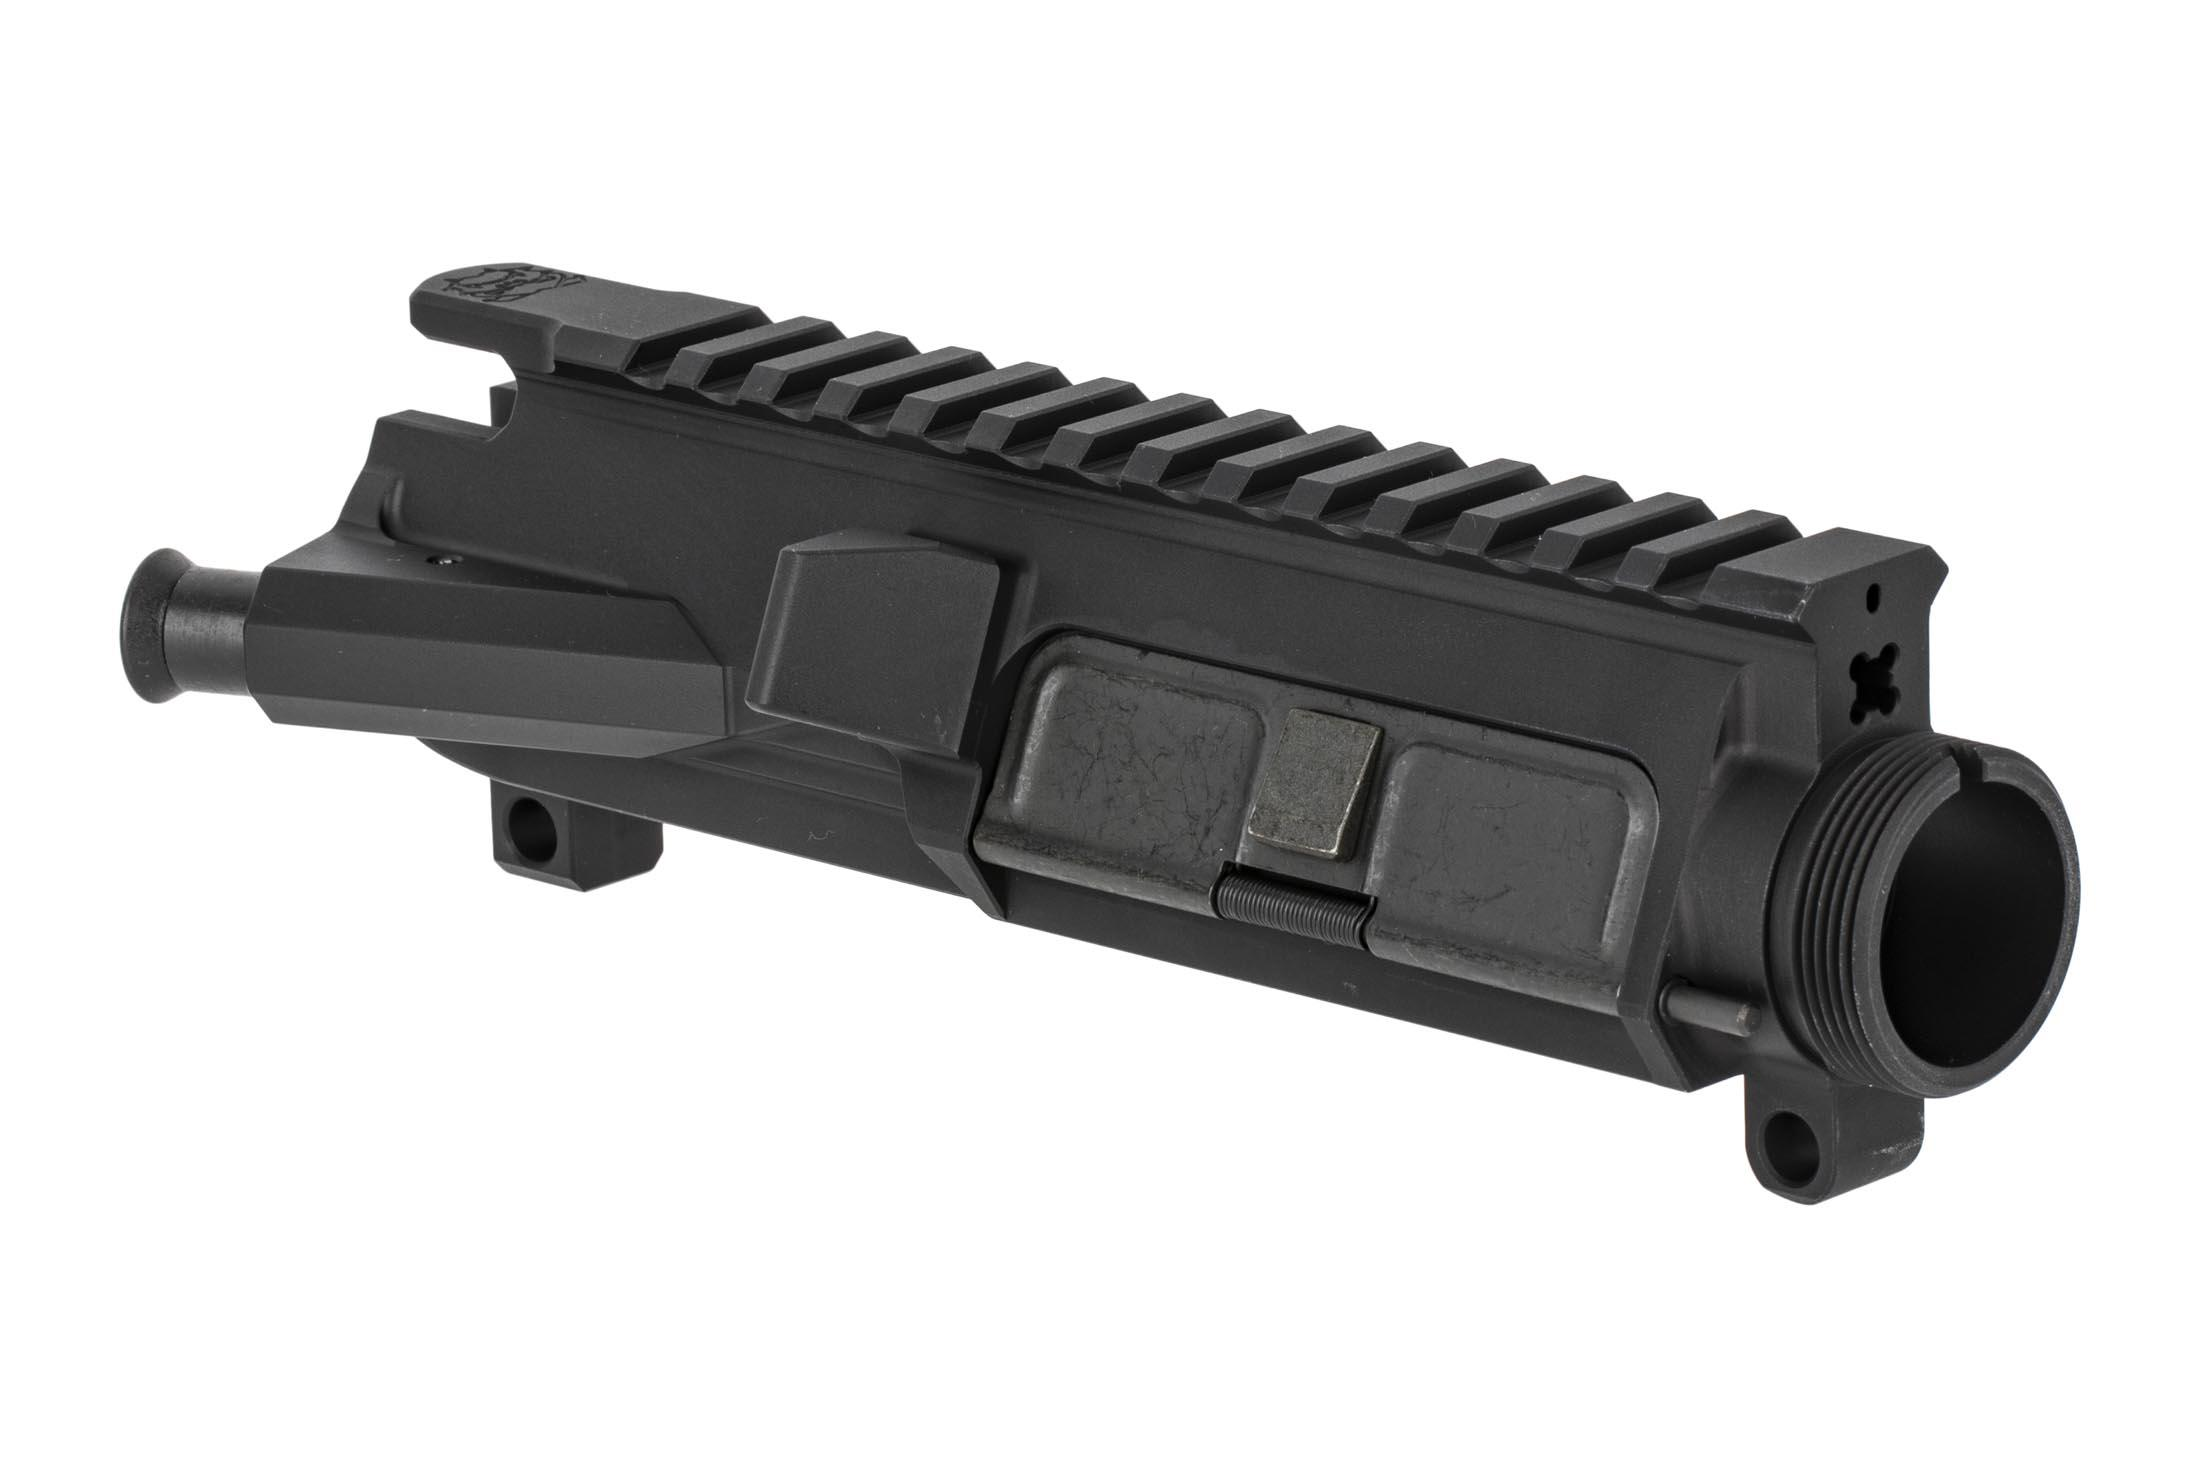 Rosco Manufacturing Purebred series billet 7075-T6 aluminum AR-15 upper receiver assembly with forward assist and port door